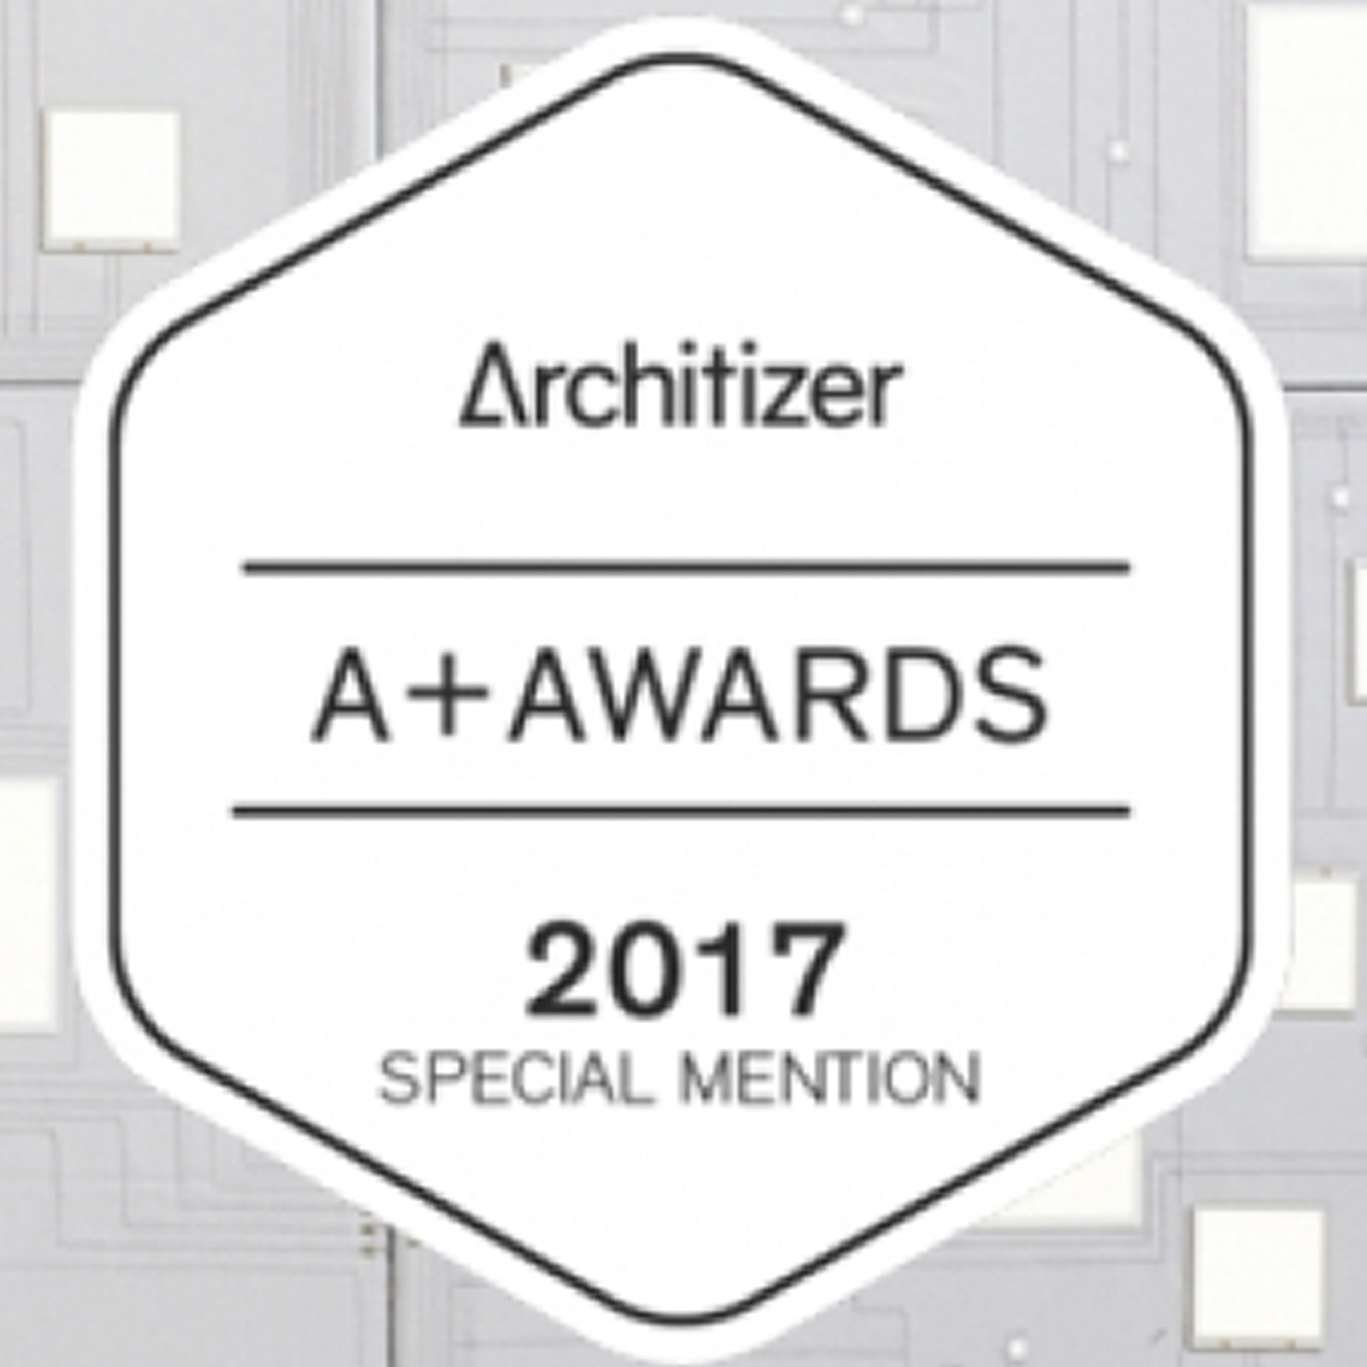 Diffus wins Architizer A+Awards Special Mention